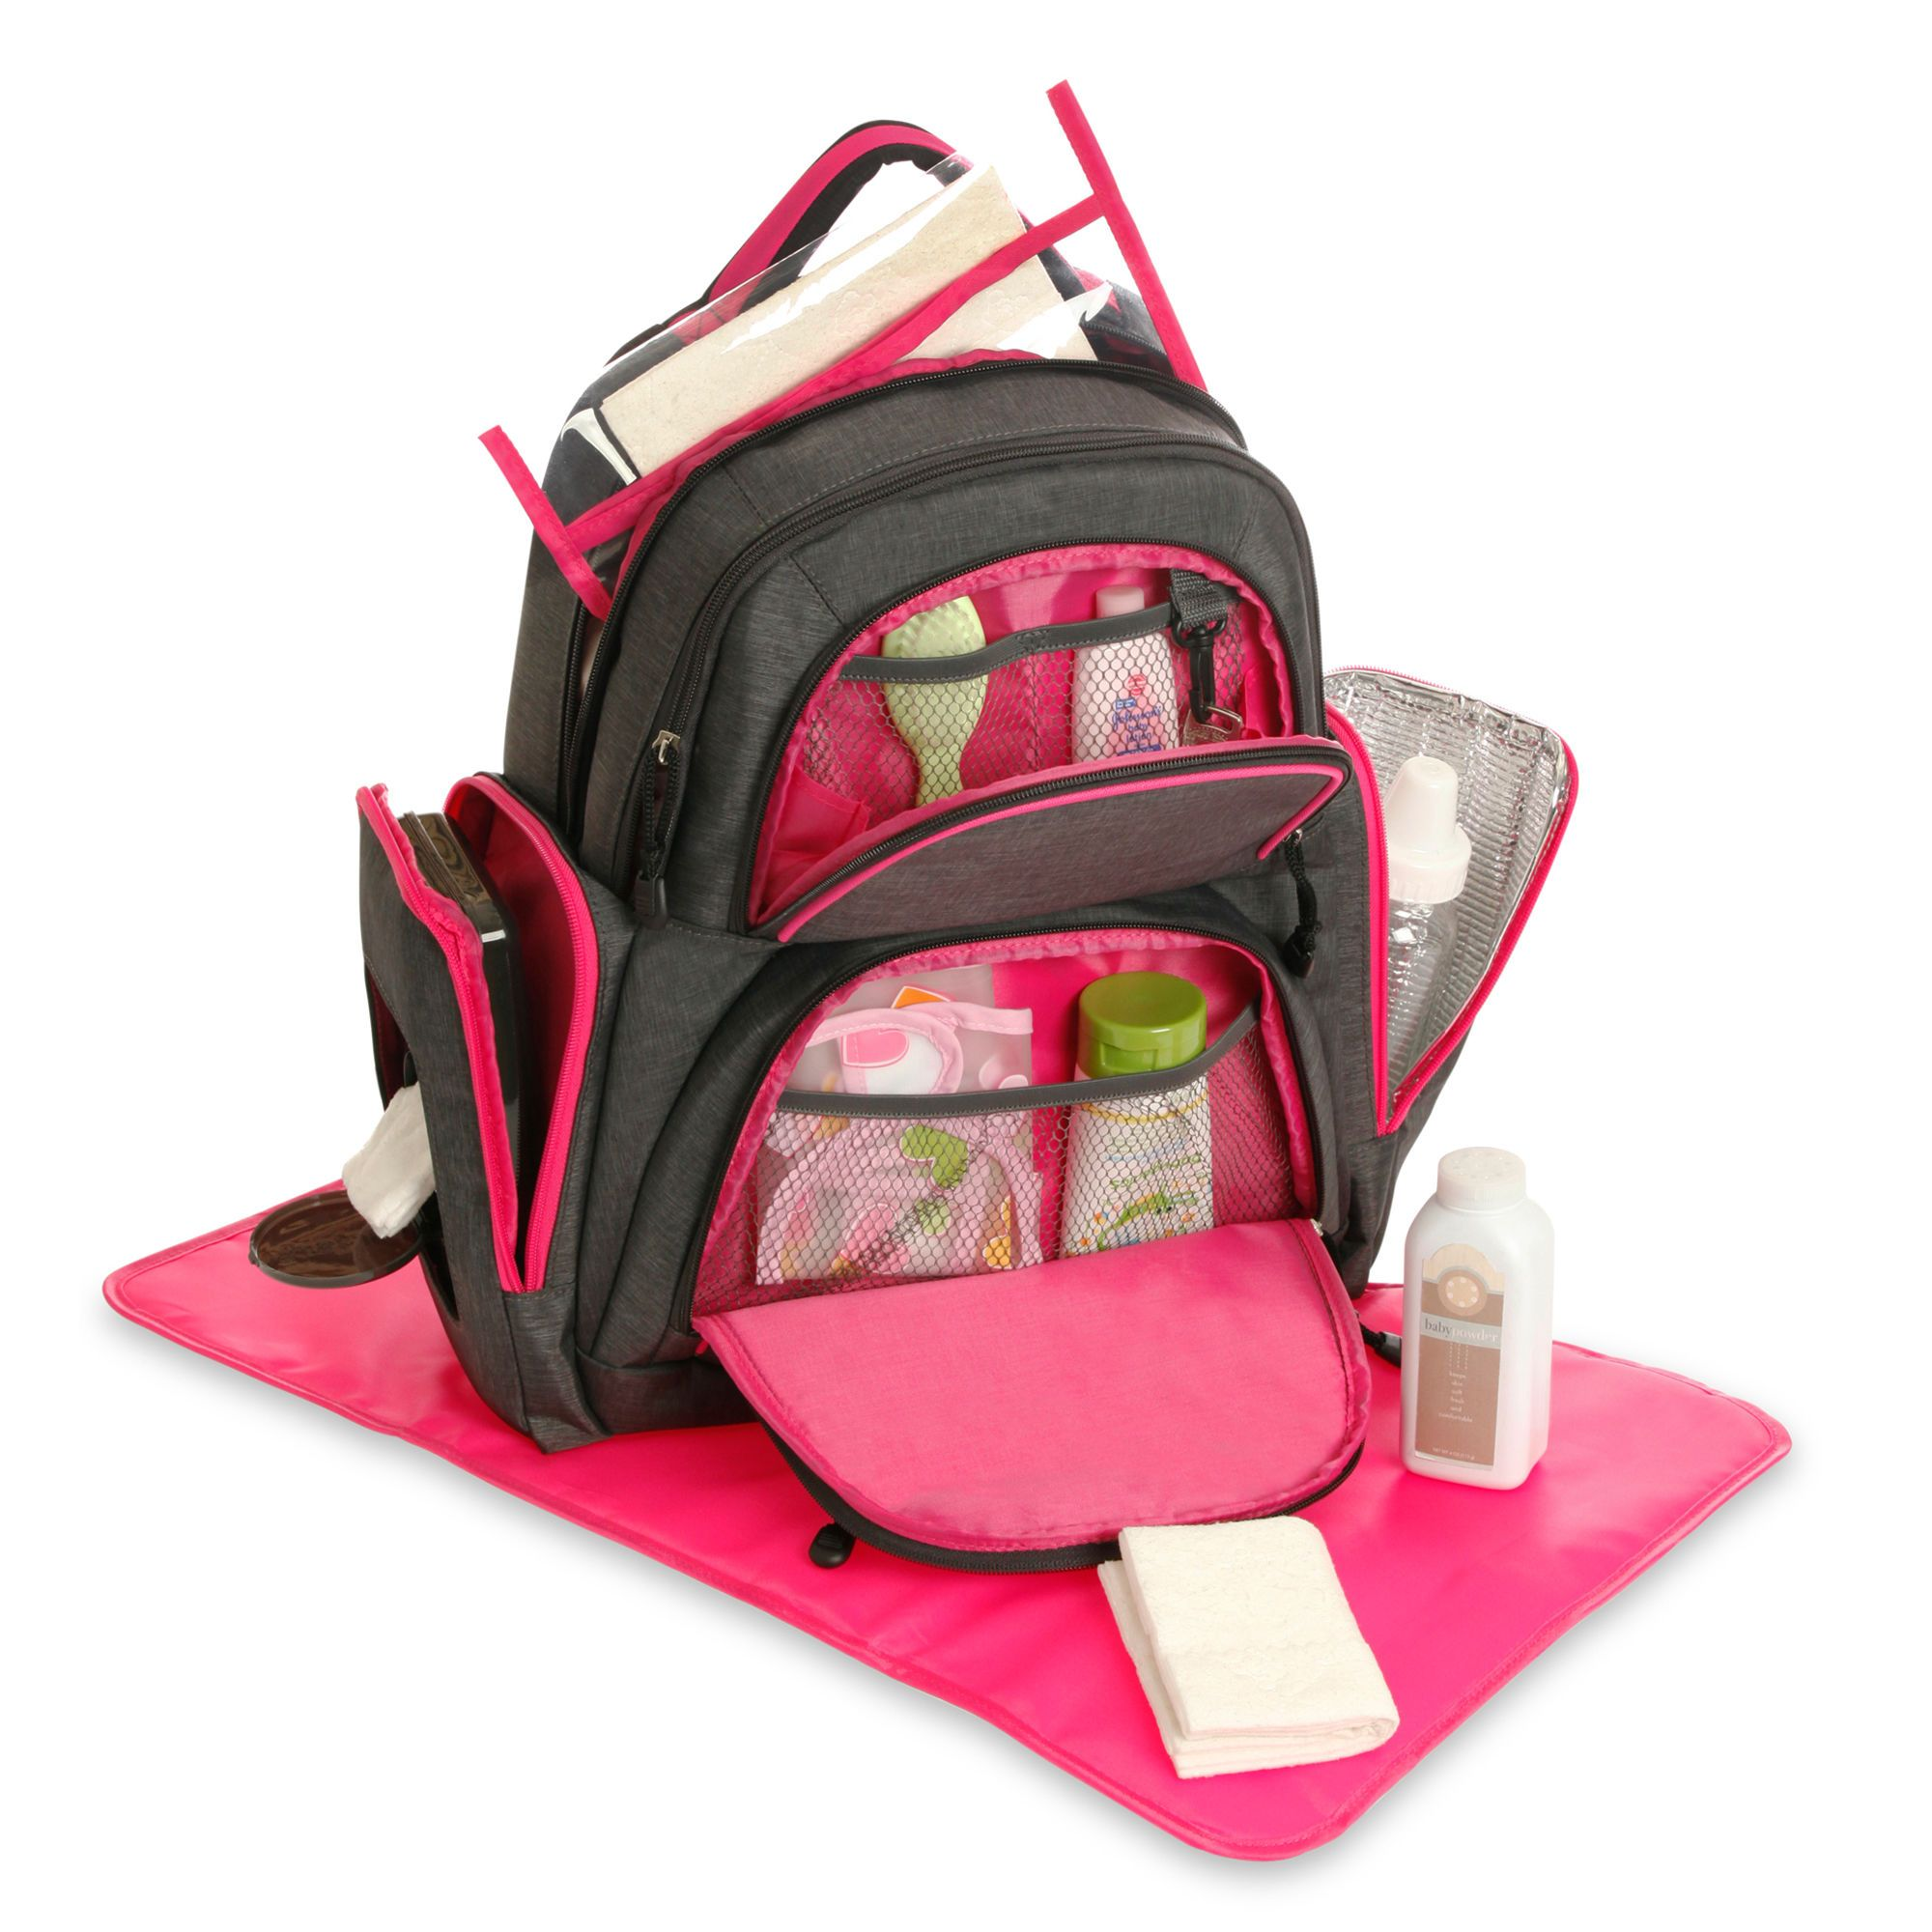 Athletic Backpack Diaper Bag | Backpack diaper bags, Colors and Bags